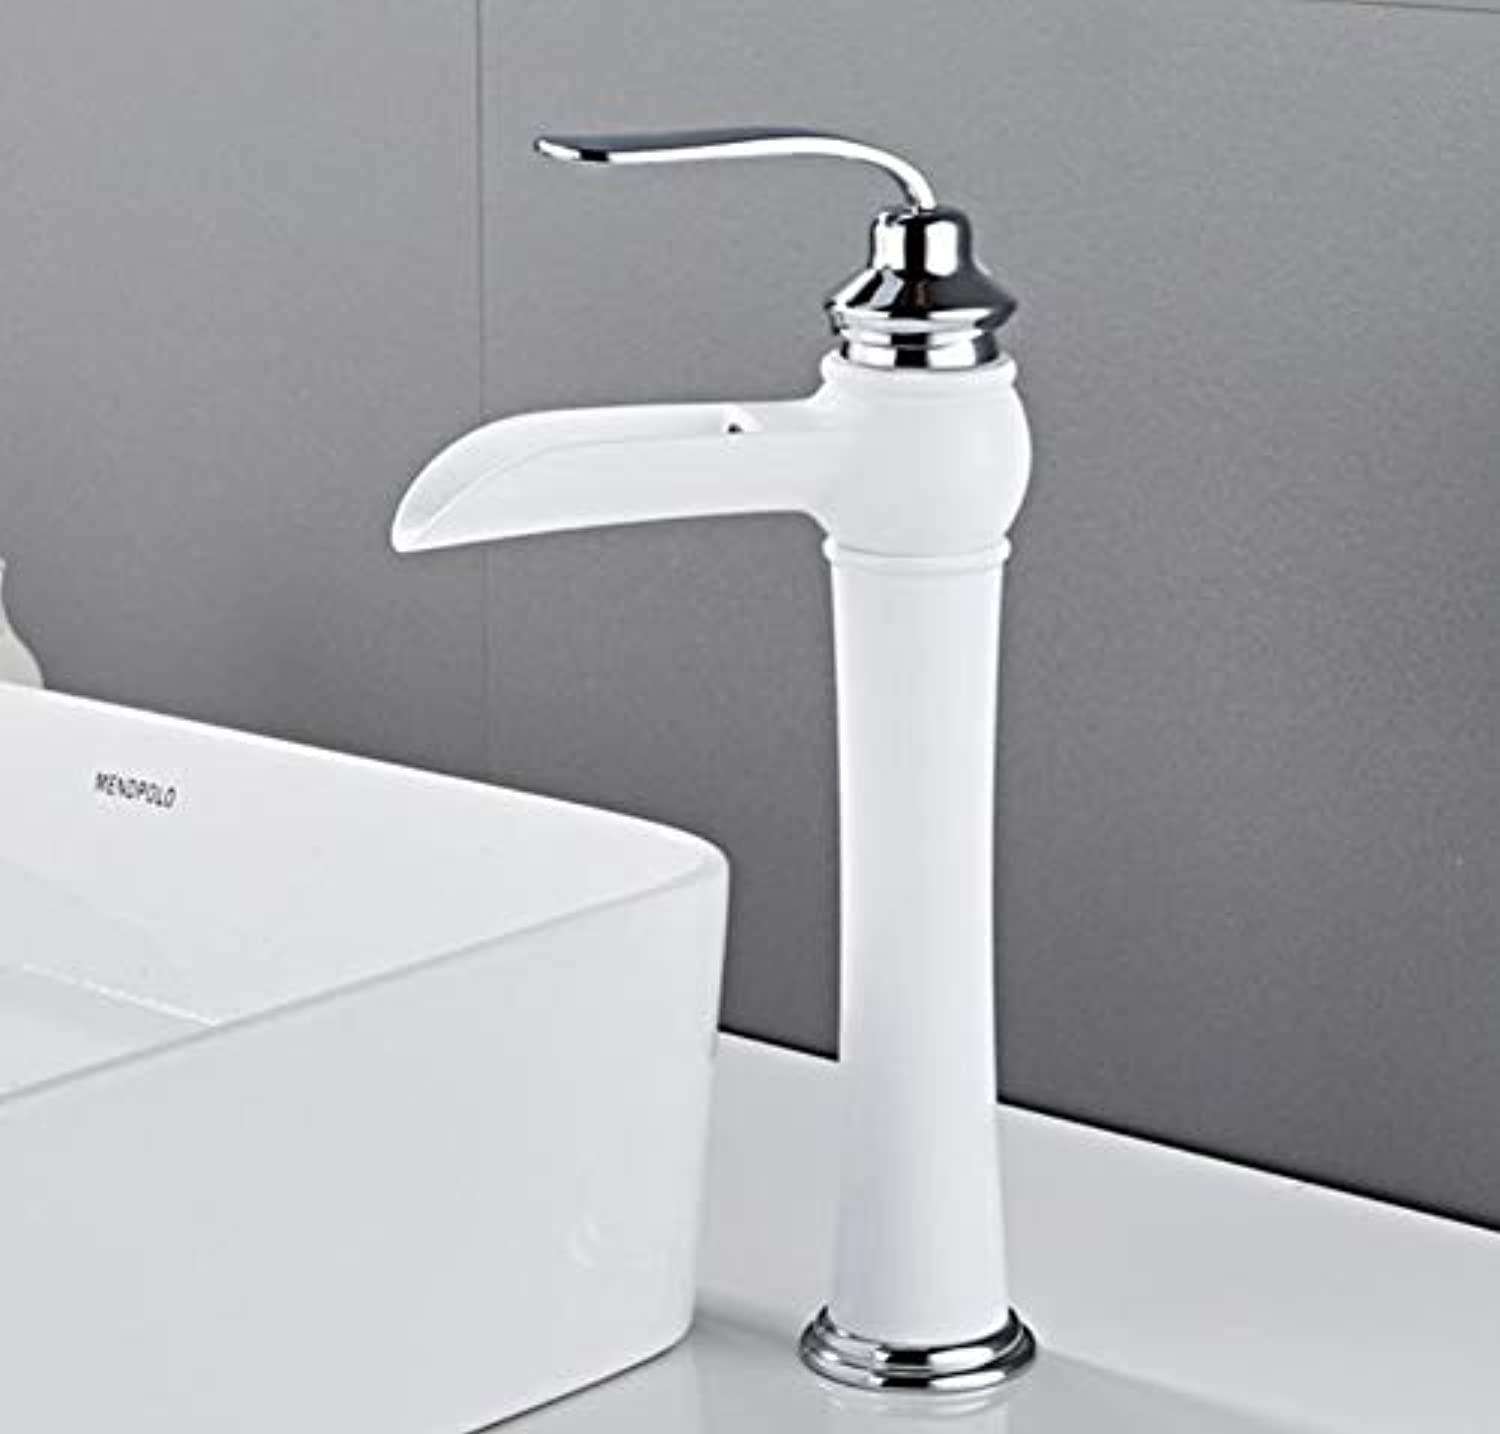 Wasserhahn Waschbecken Faucet Single Handle Waterfall Basin Mixer Tap Hot And Cold Bathroom Faucet Sink Waterfall Faucet